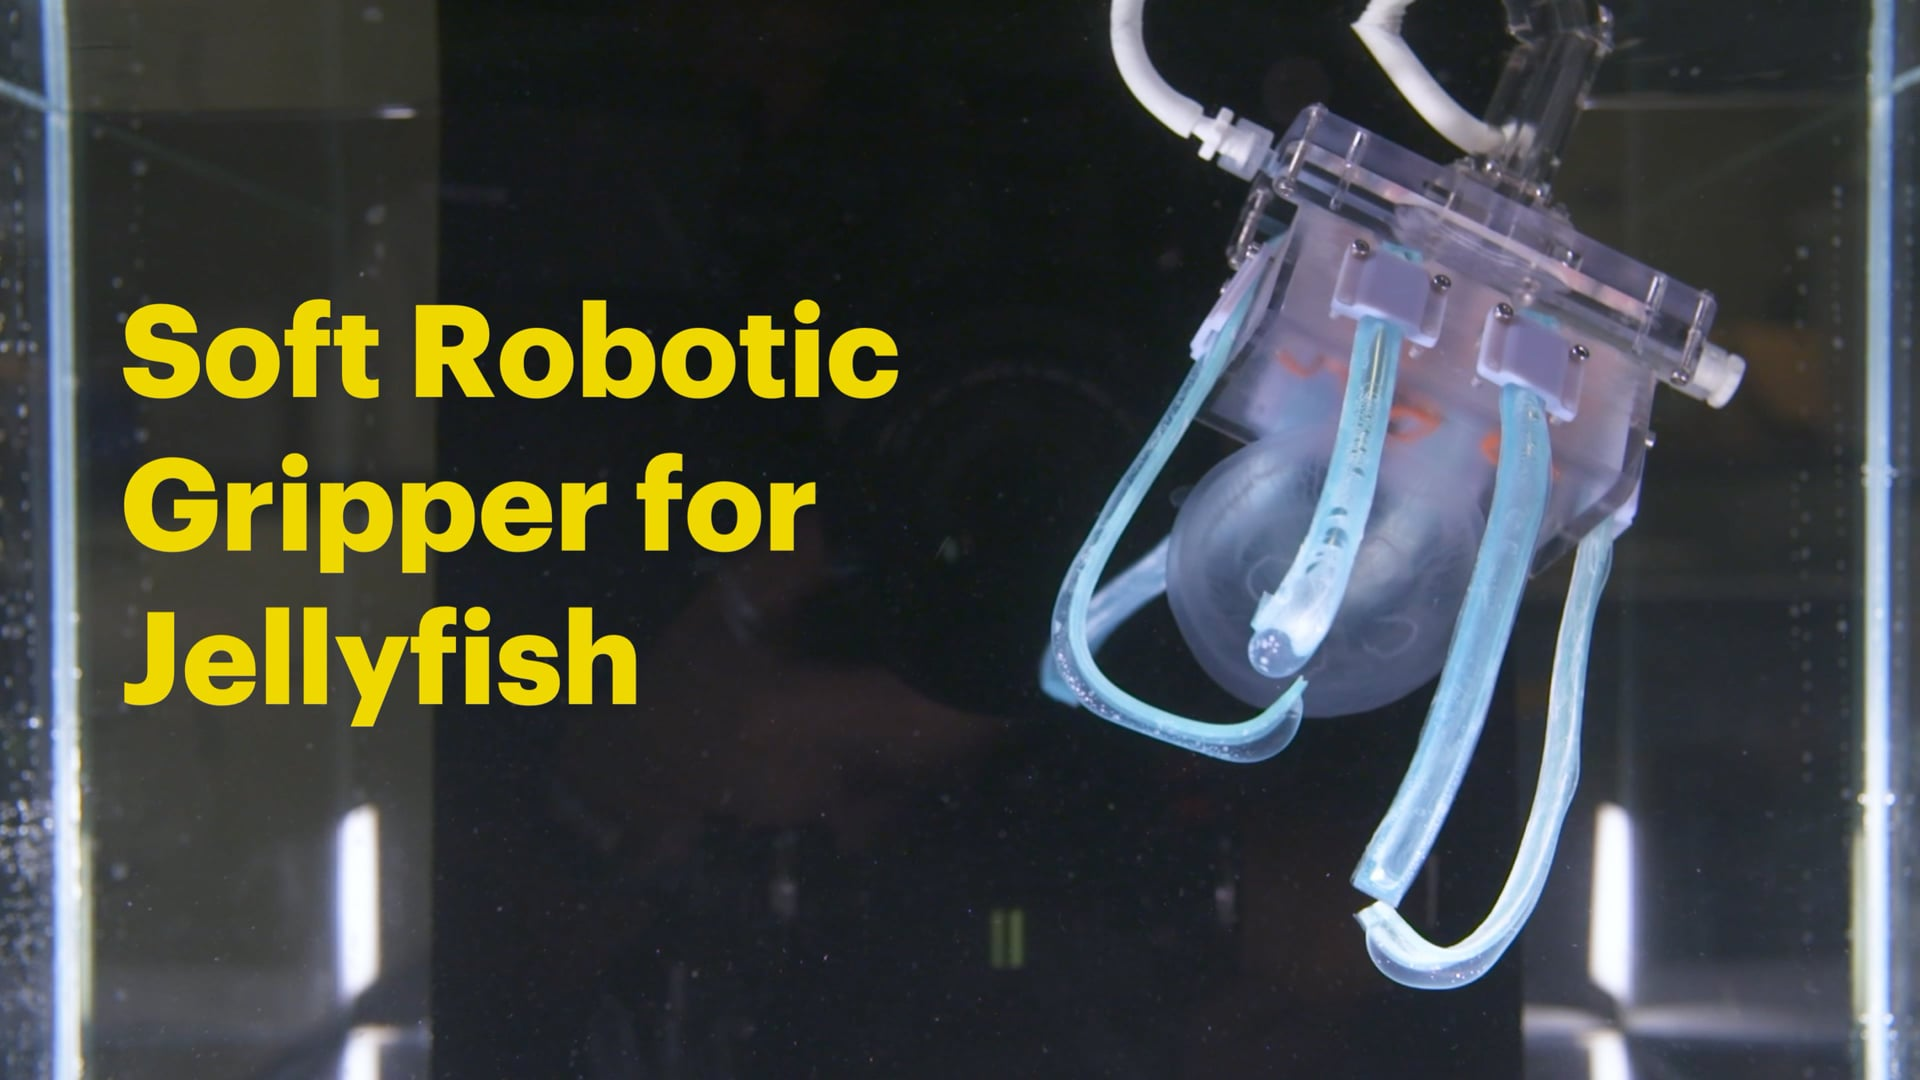 Soft Robotic Gripper for Jellyfish